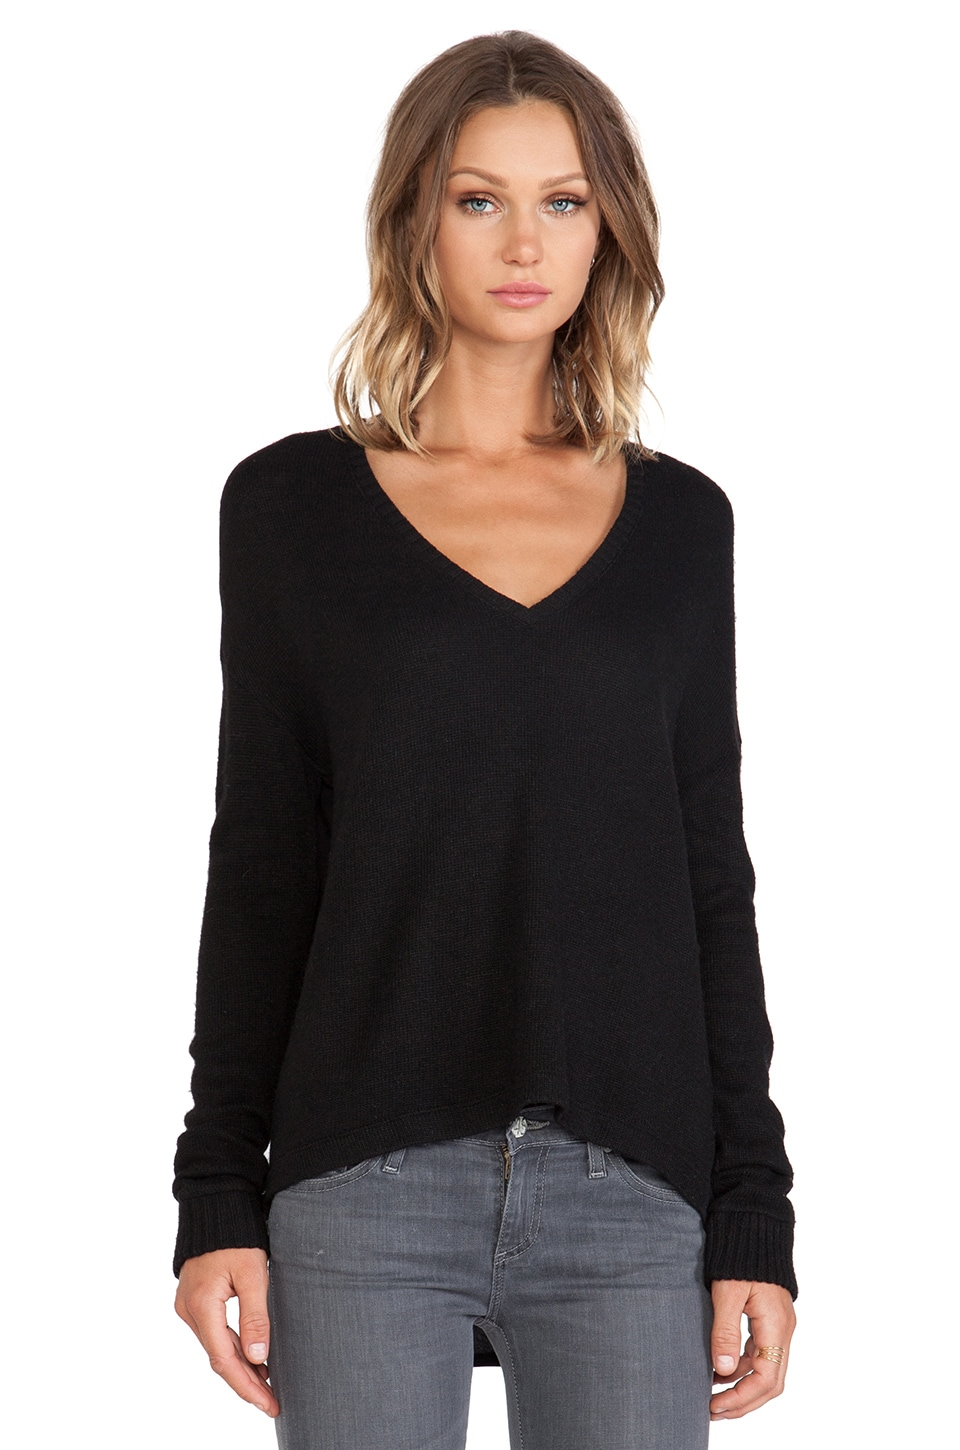 Bella Luxx Drop Shoulder V-Neck Sweater in Black